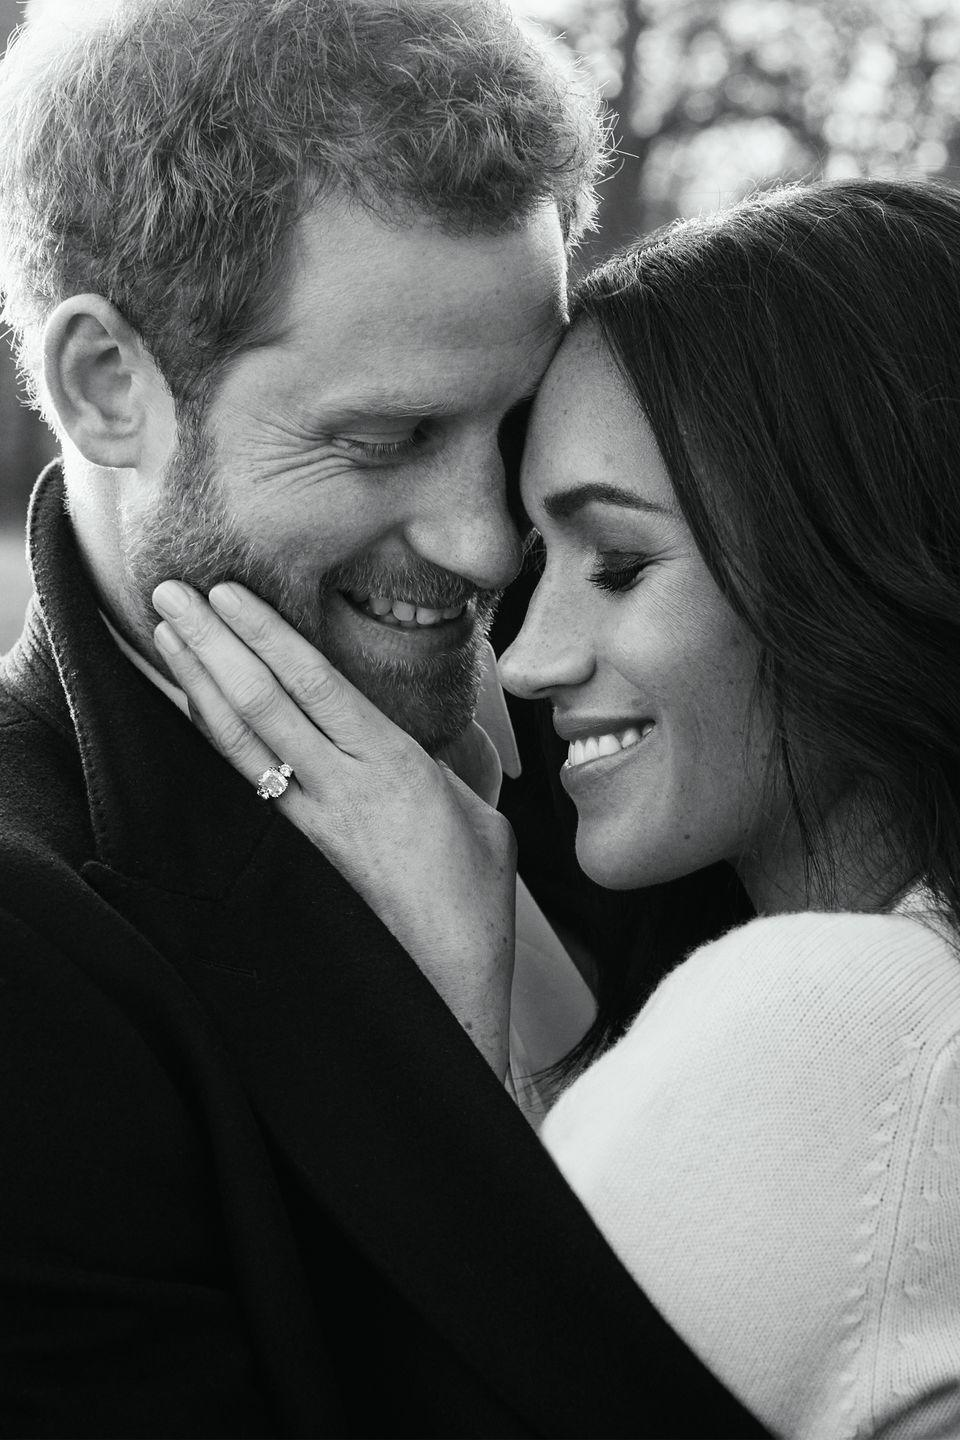 <p>Meghan's engagement ring is visible in this portrait of the newly engaged couple.</p>